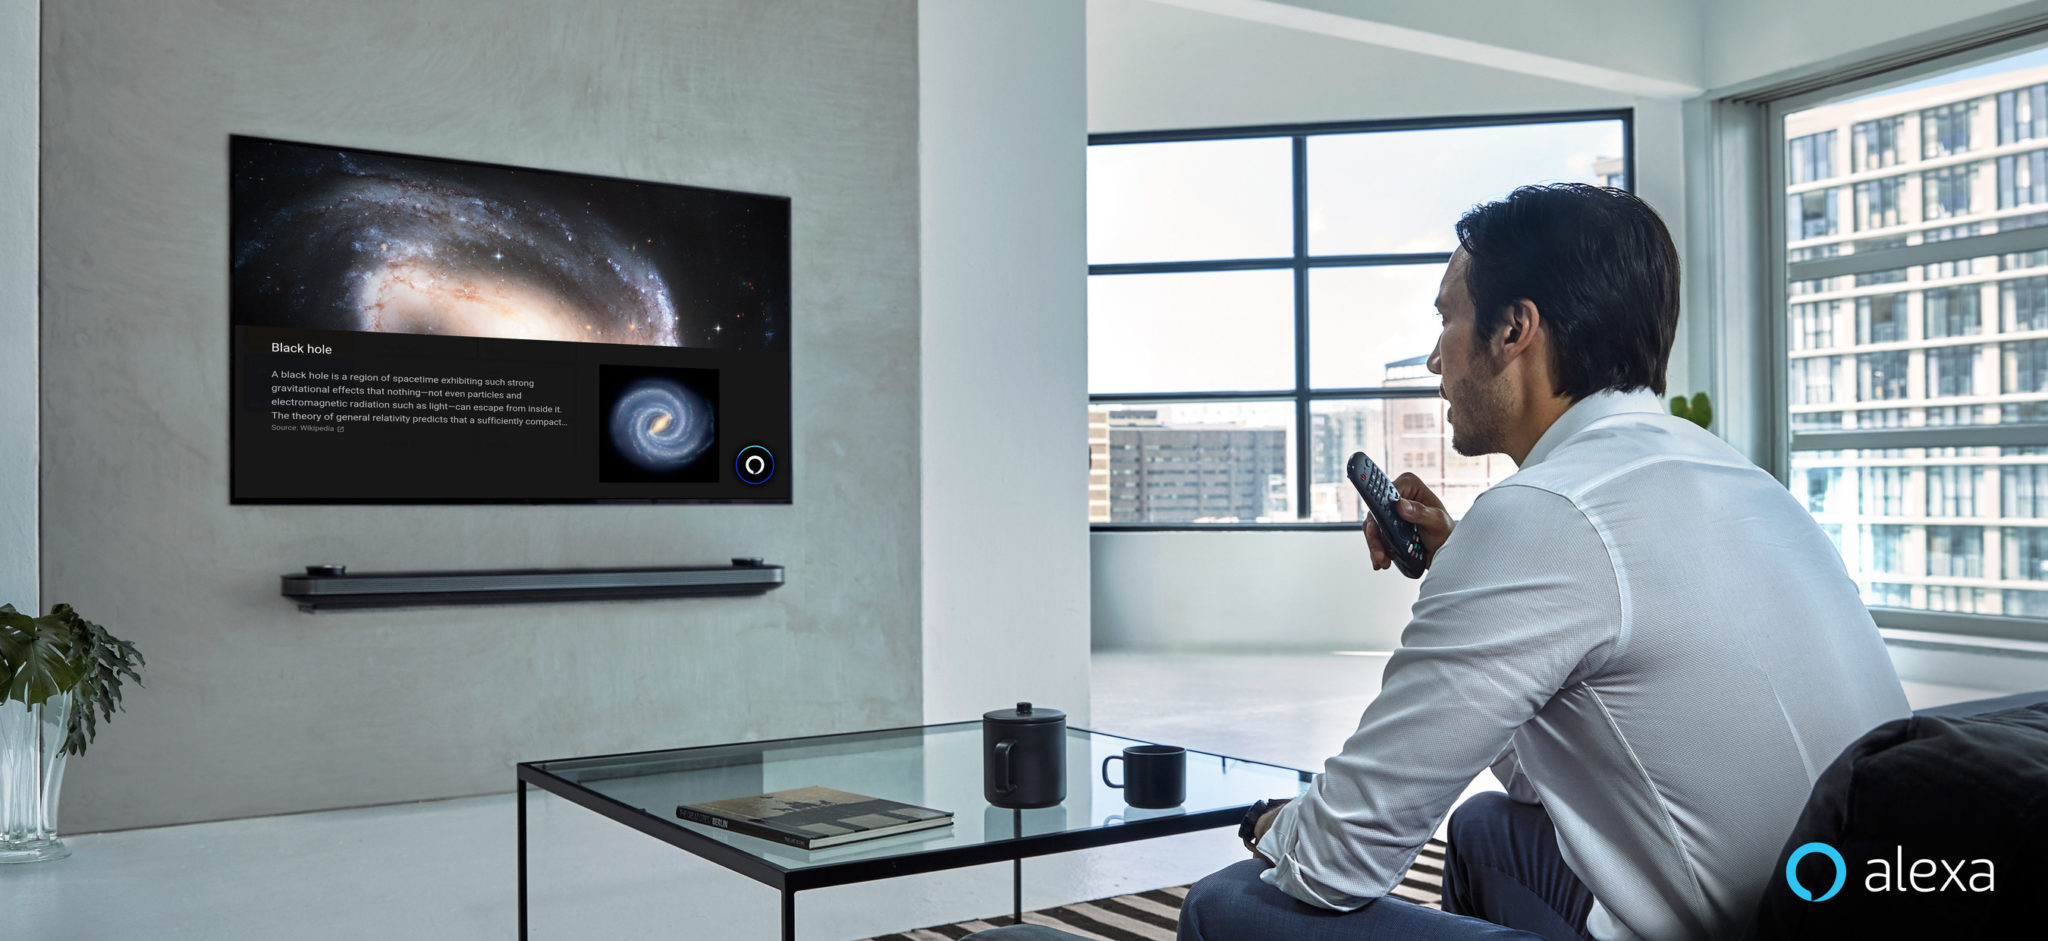 Amazon Alexa Is Being Added to Some LG Smart TVs - Cord